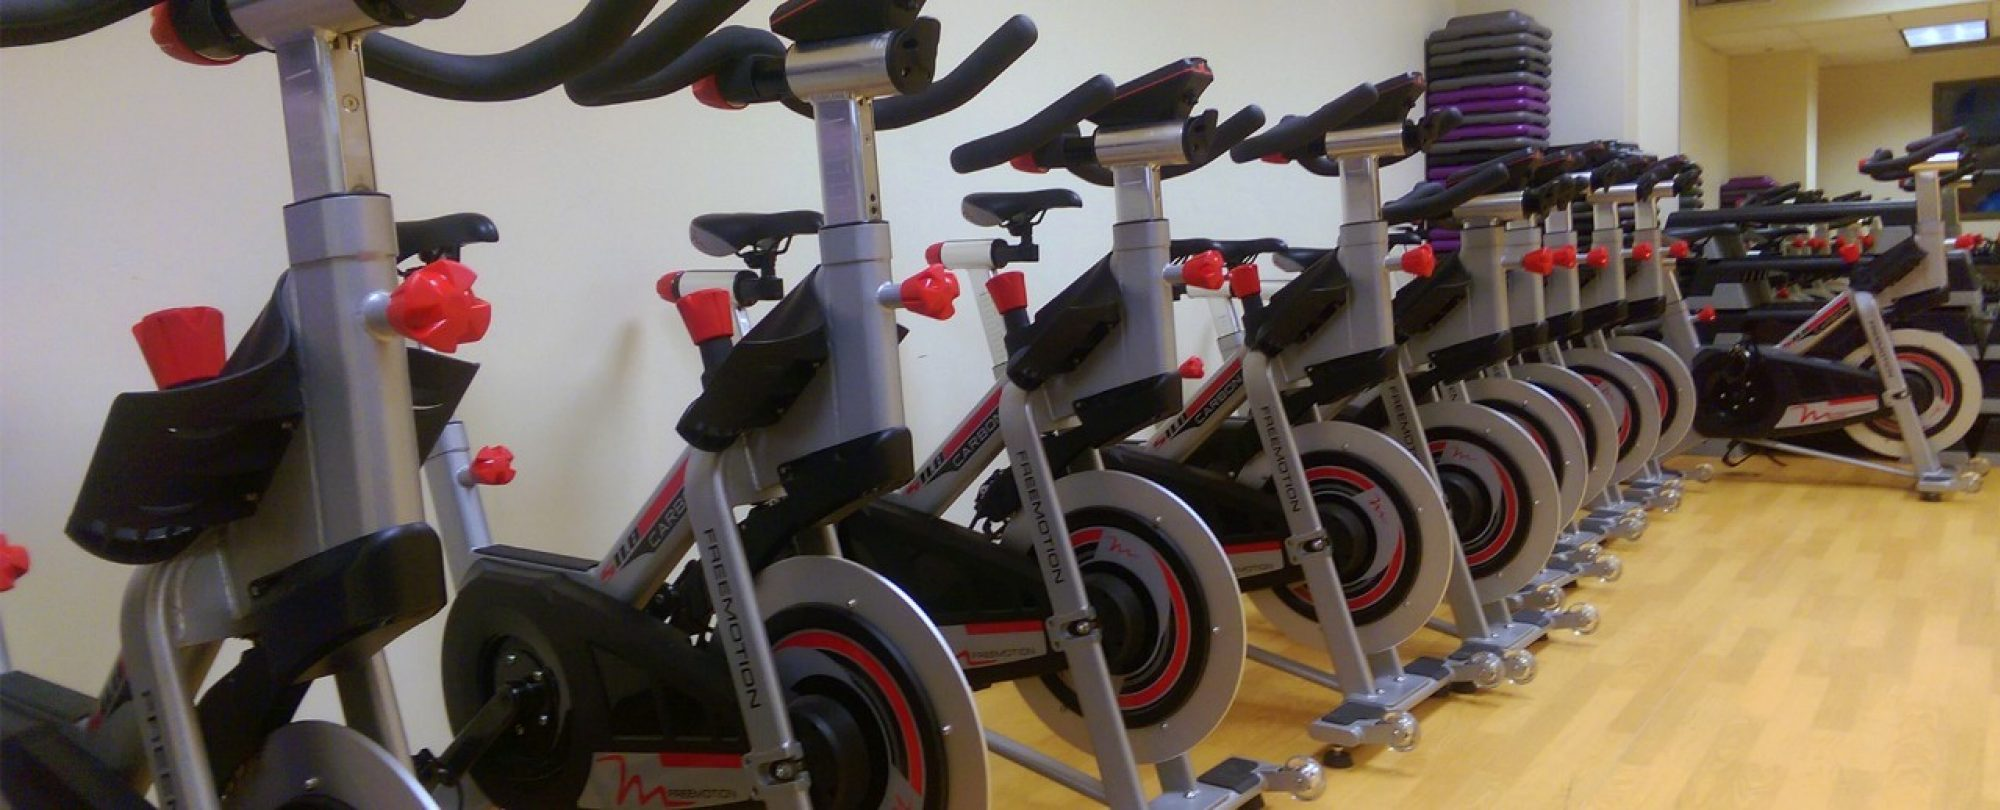 Photo of row of exercise bikes